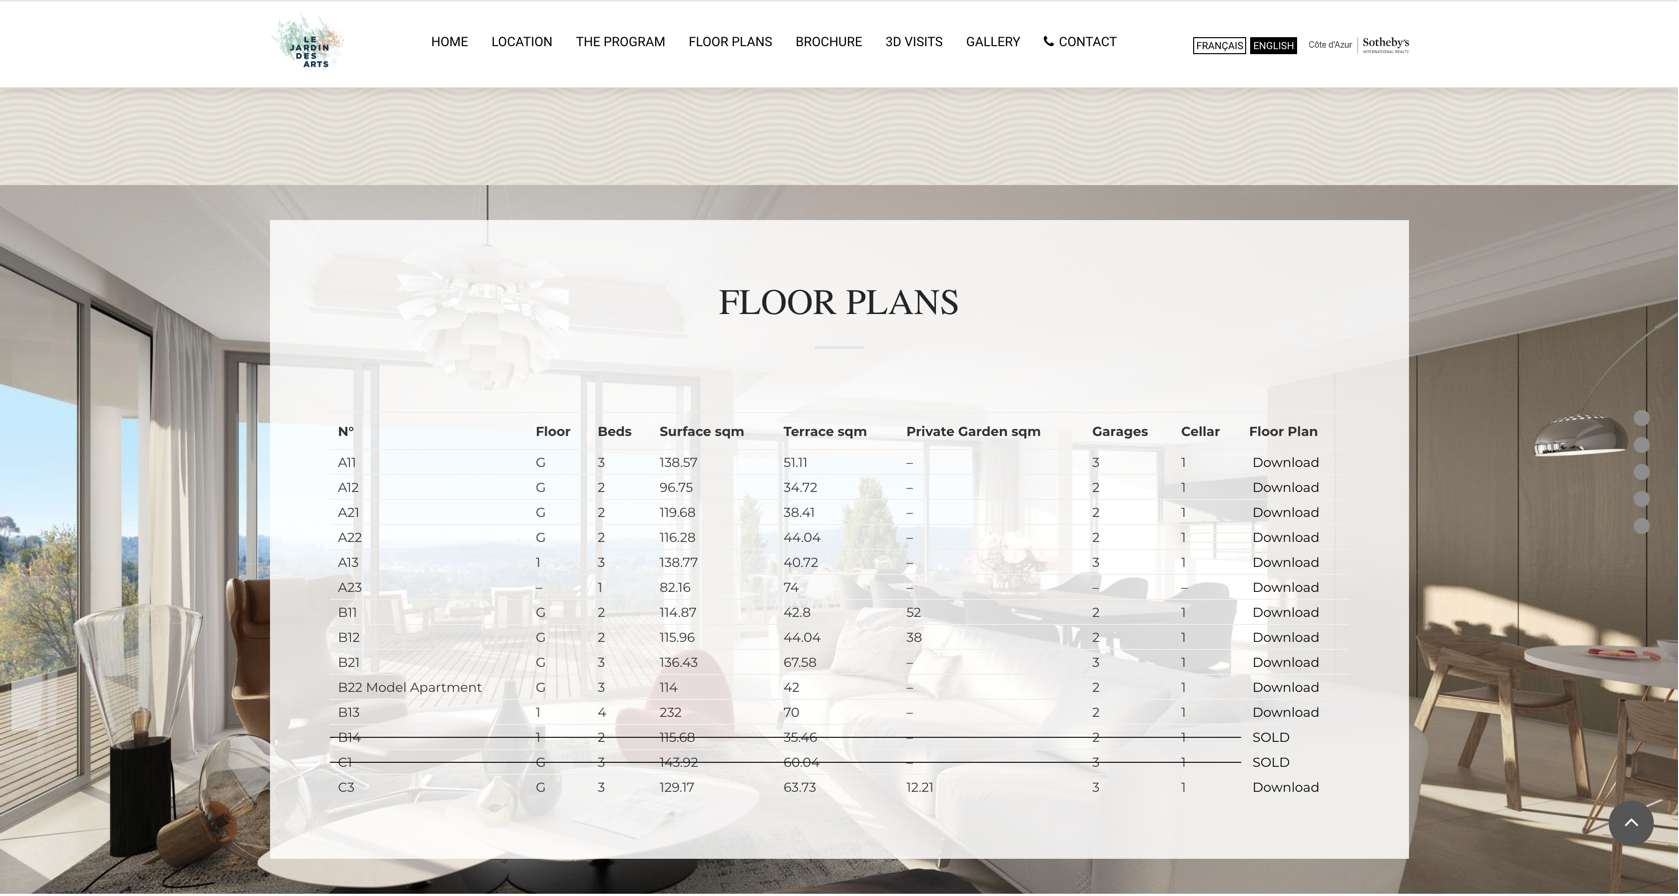 Floor Plans section from a website developed by Golden Lobster Agency